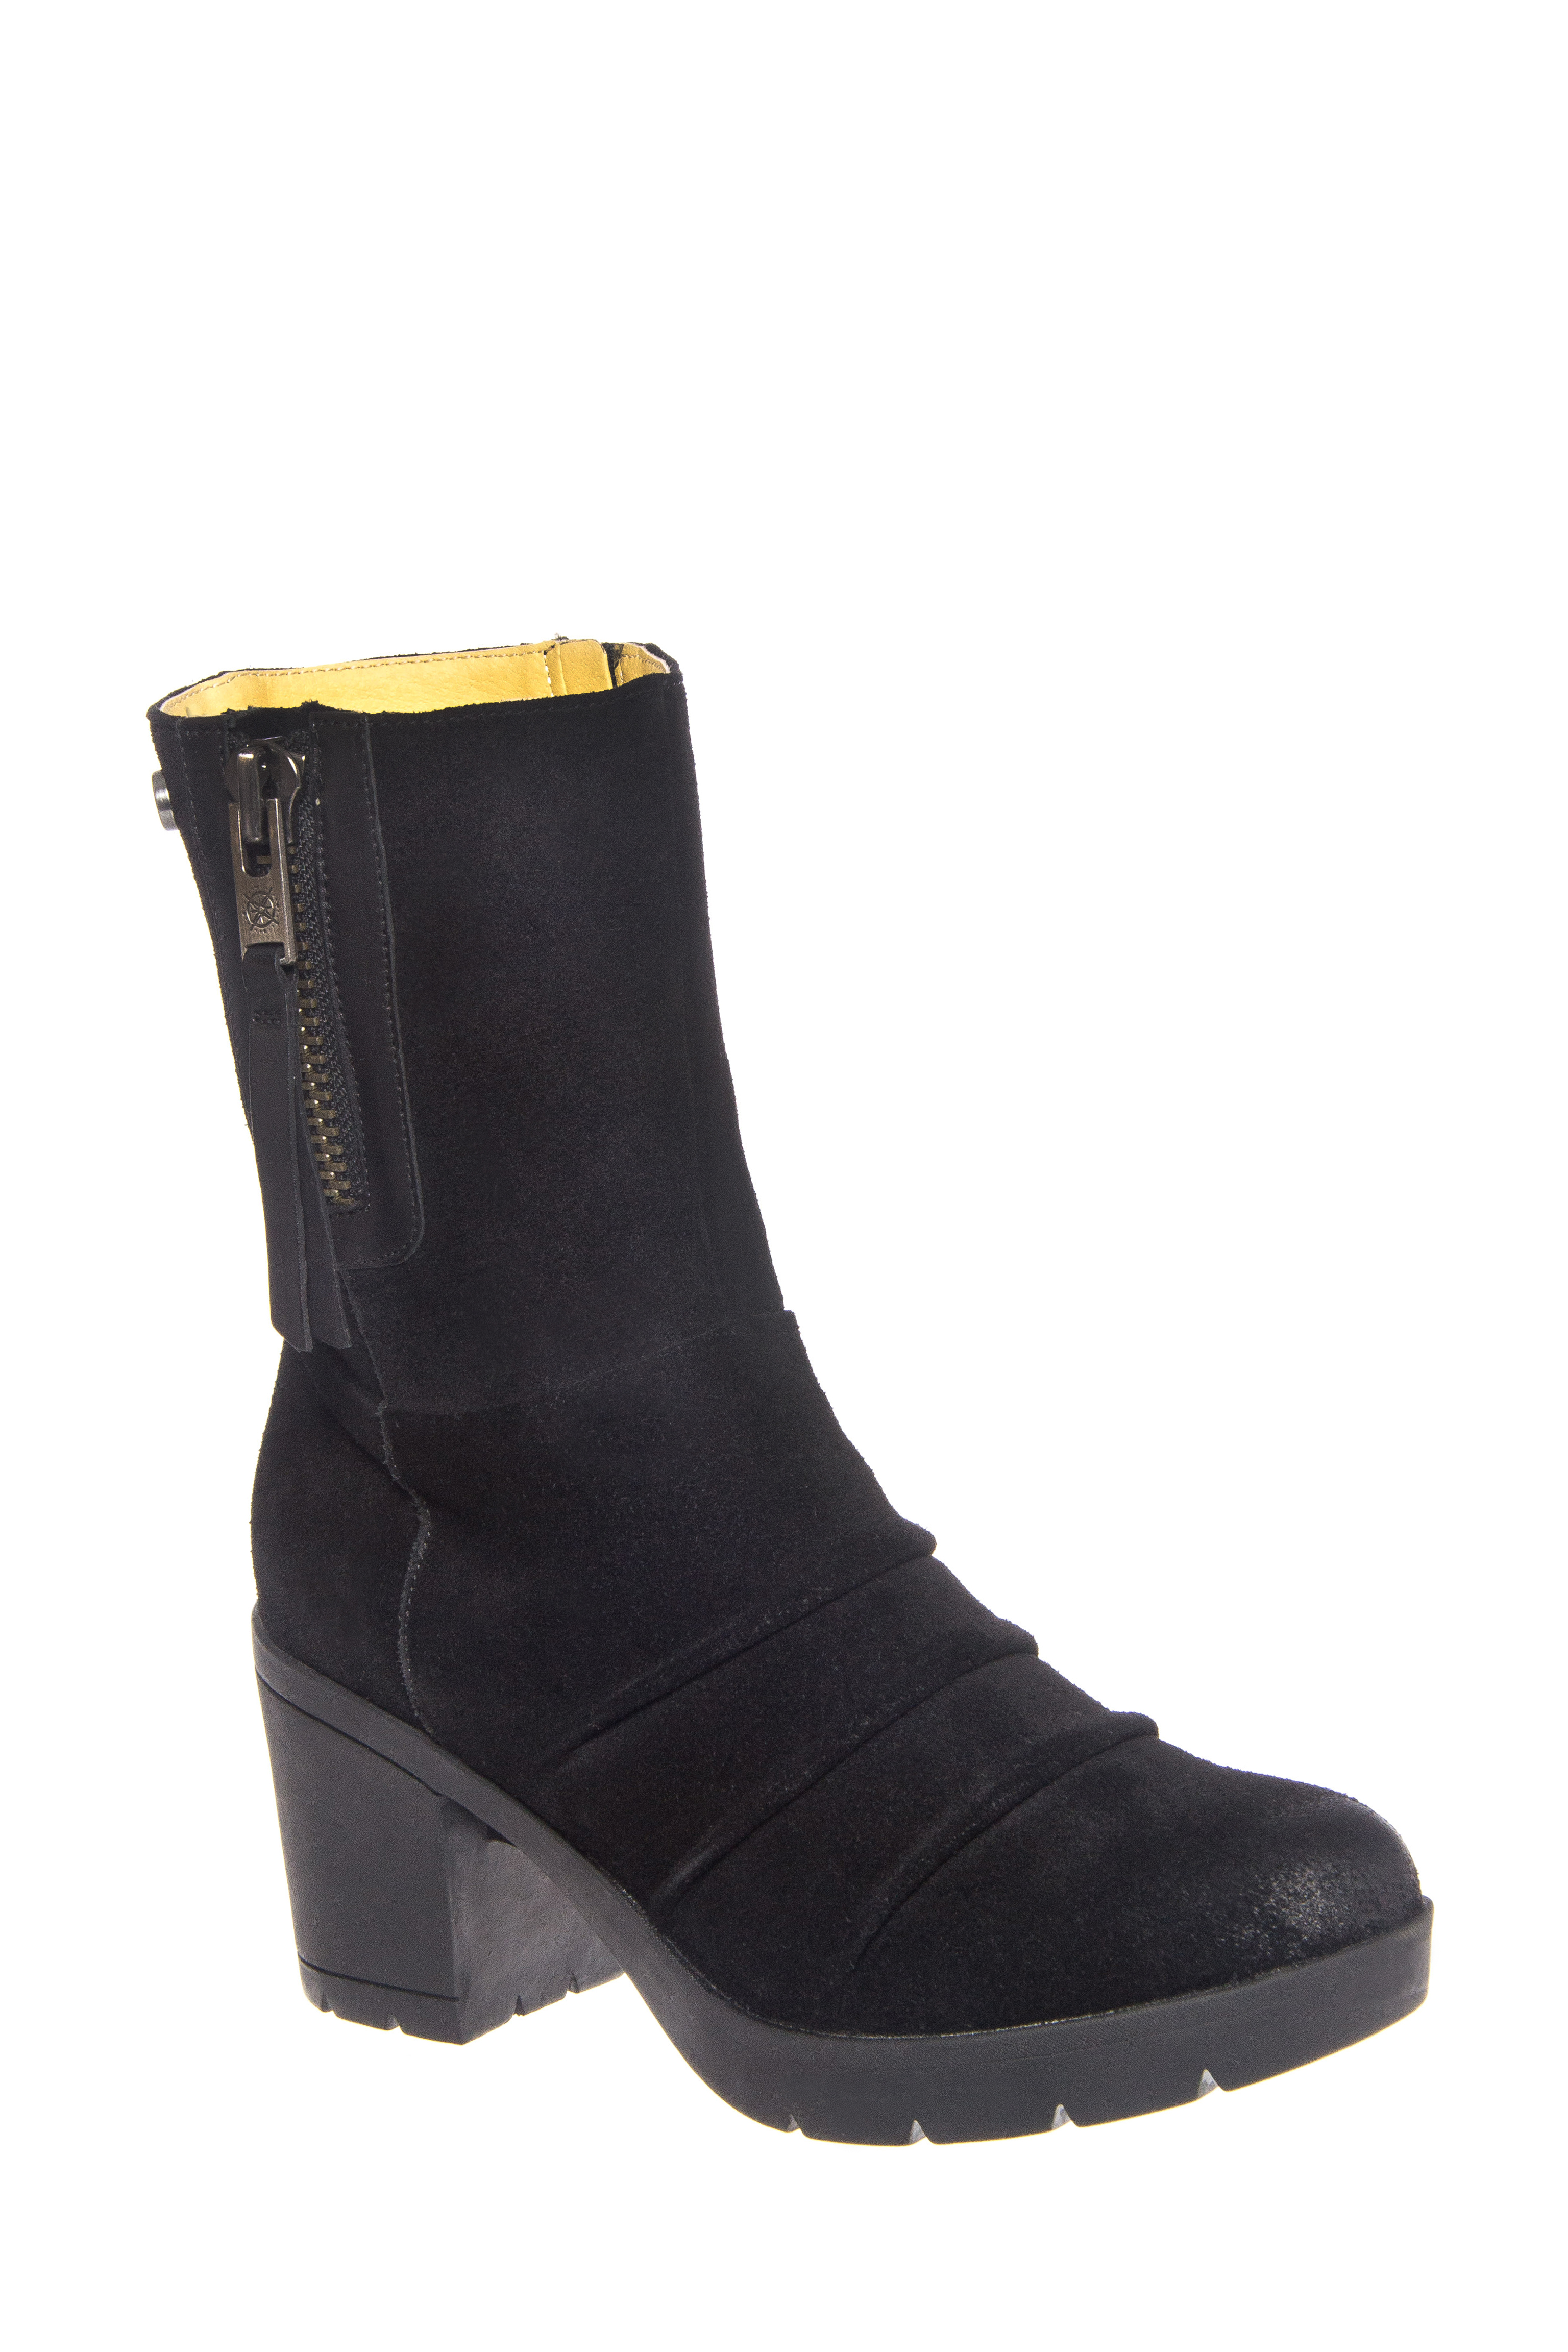 Bussola Bucharest 1548 Mid Heel Boots - Black